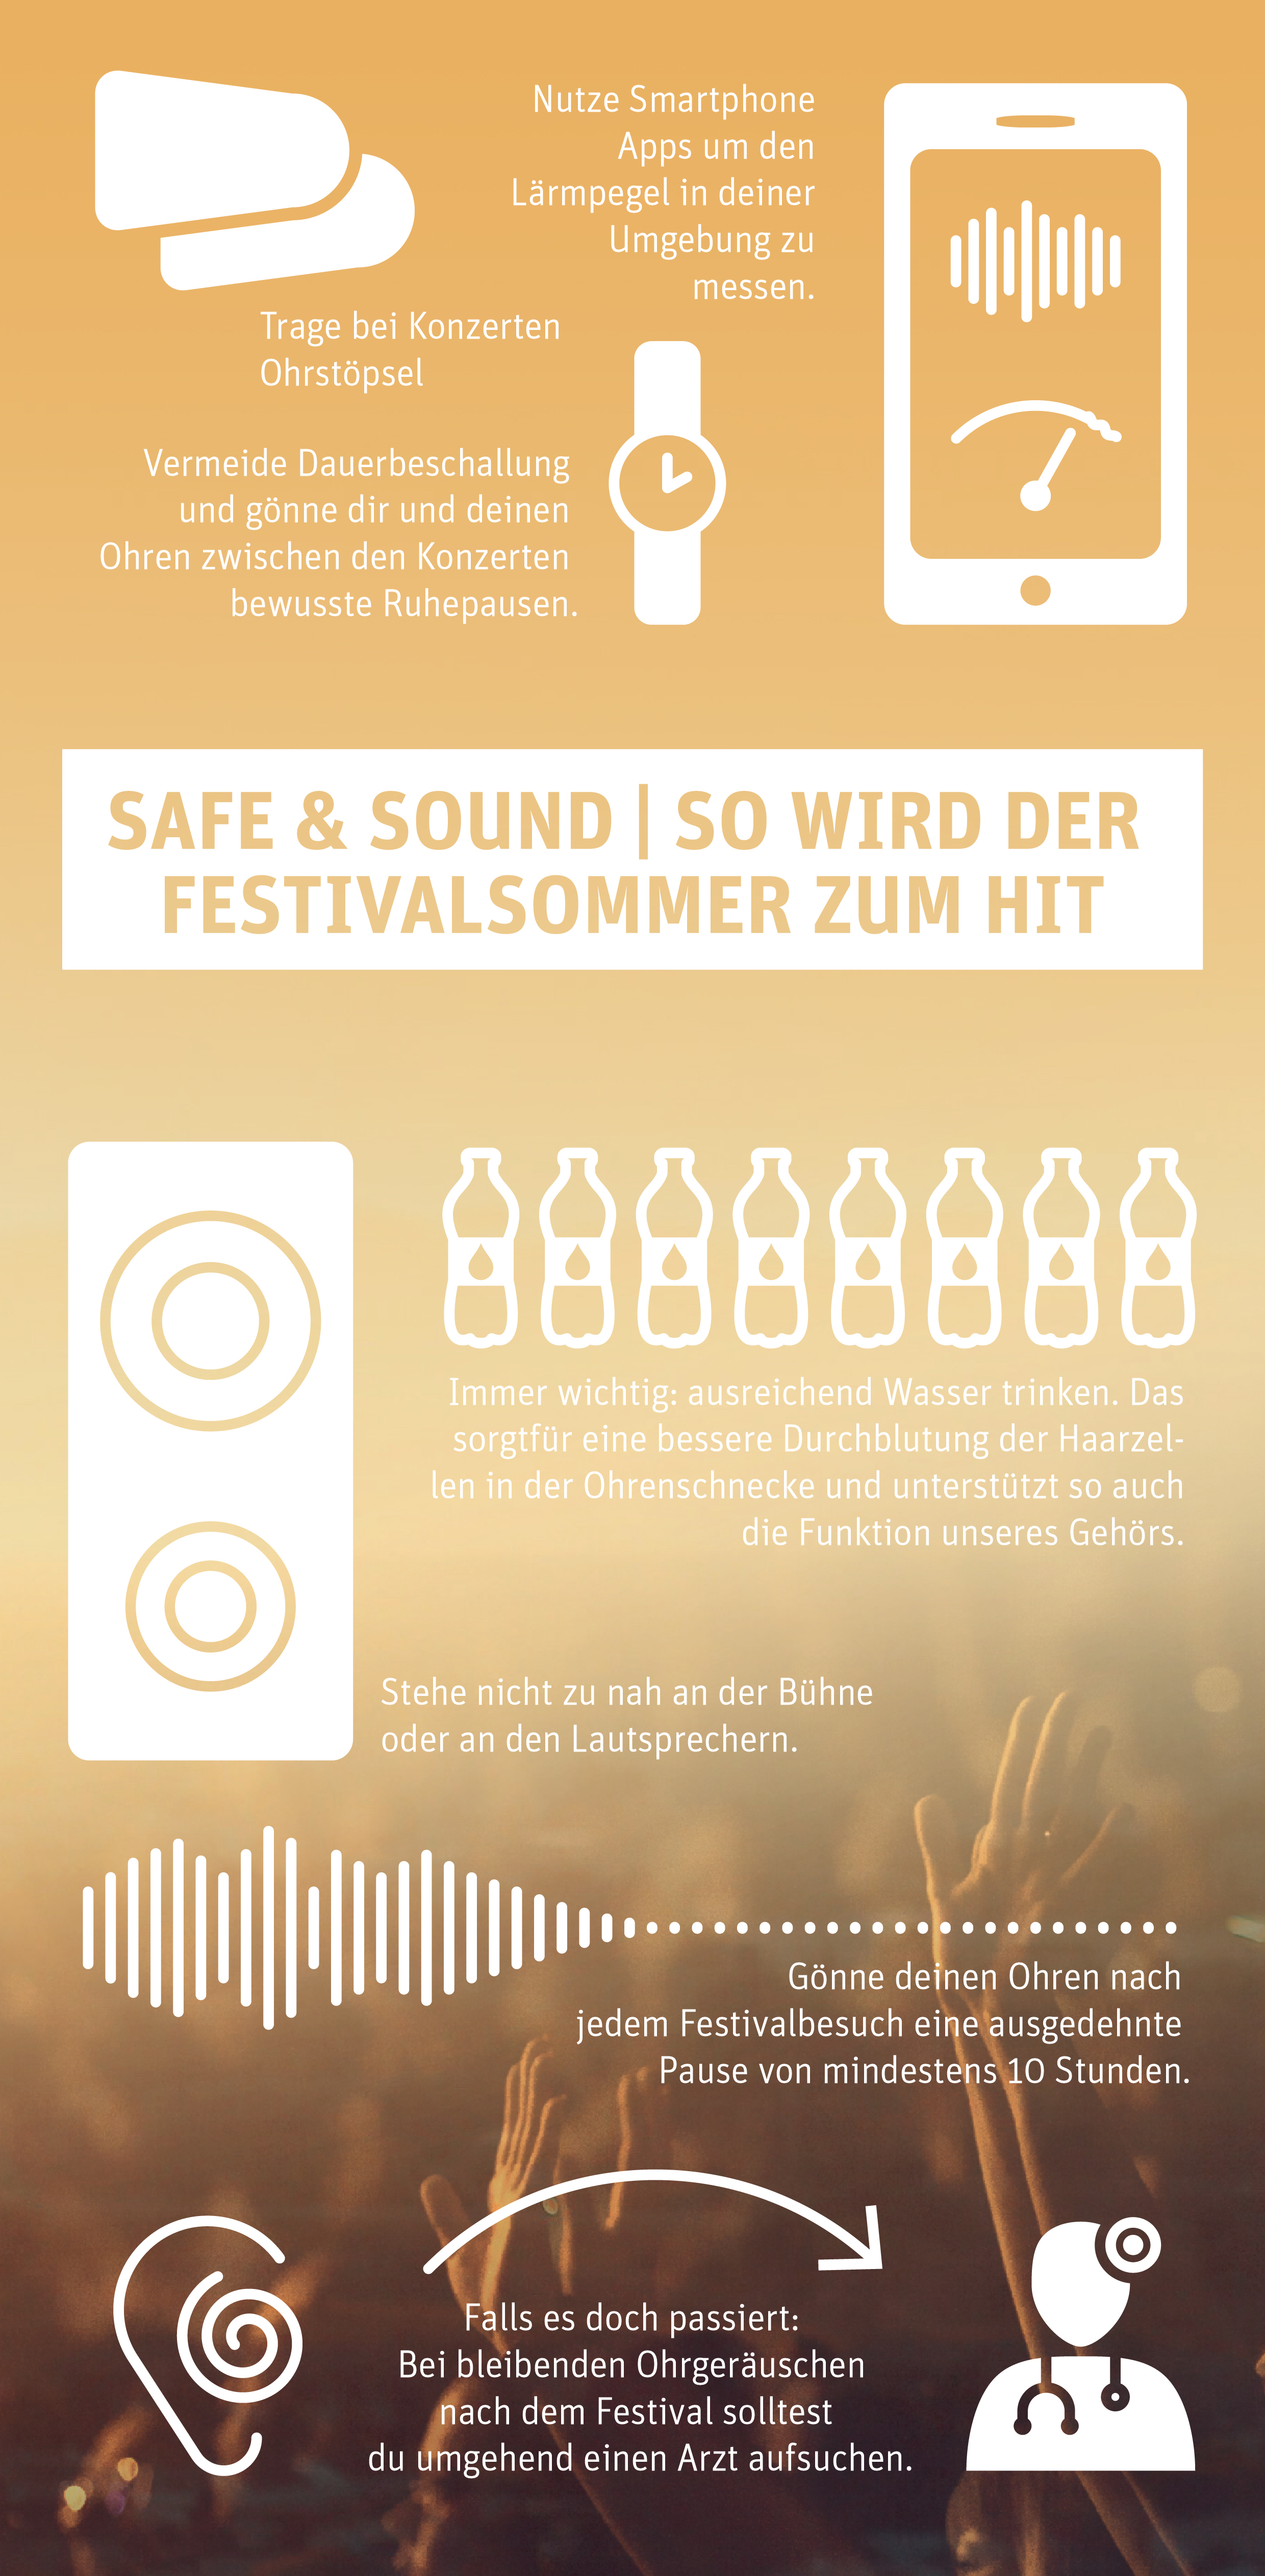 Festival-season-tips-to-keep-the-hearing-safe-Hear-the-World-Foundation-02